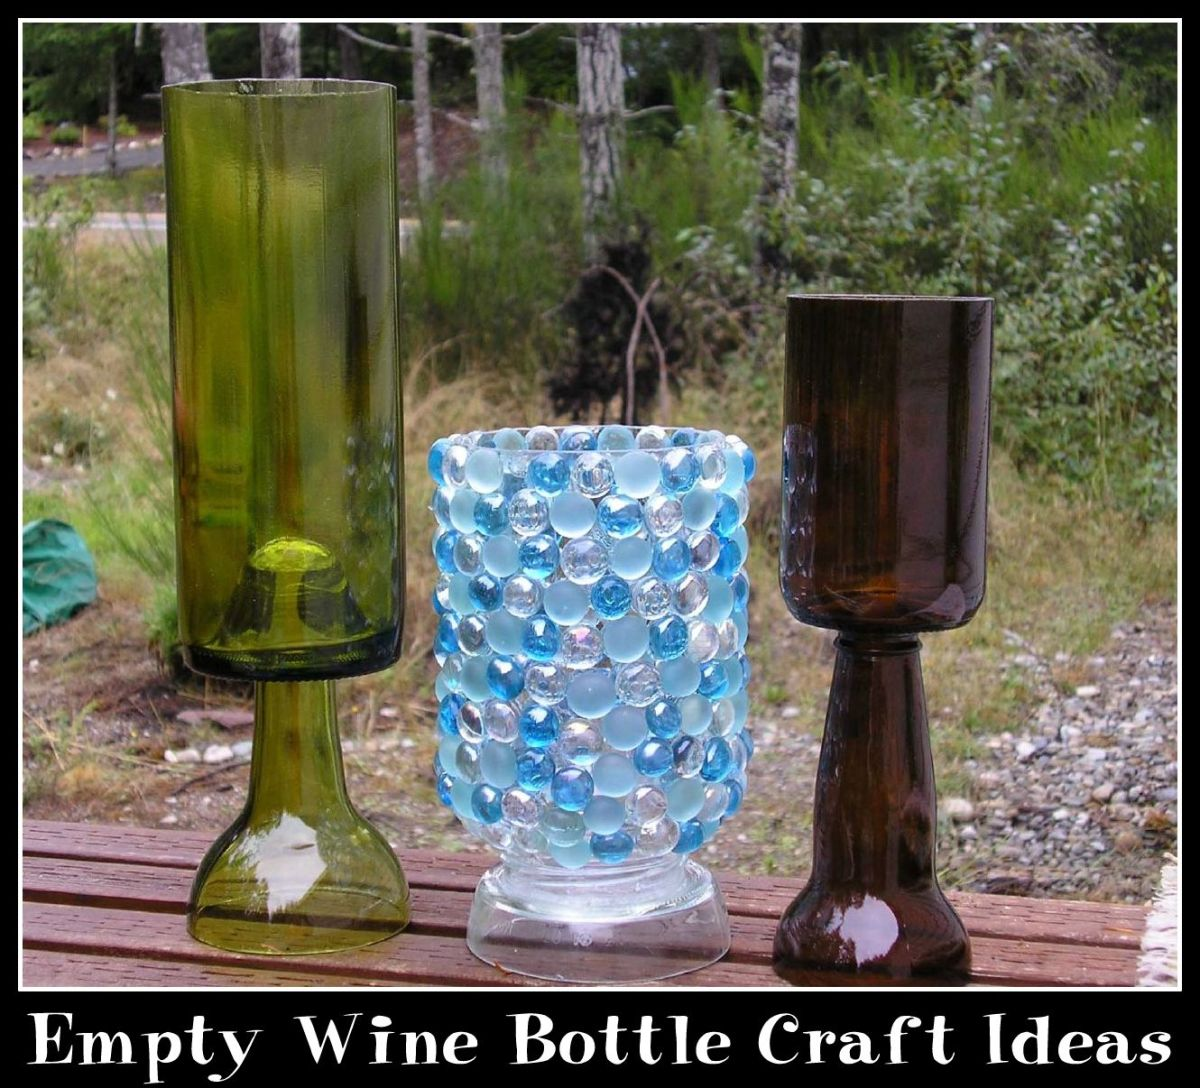 Empty wine bottle craft ideas hubpages for Things made from wine bottles